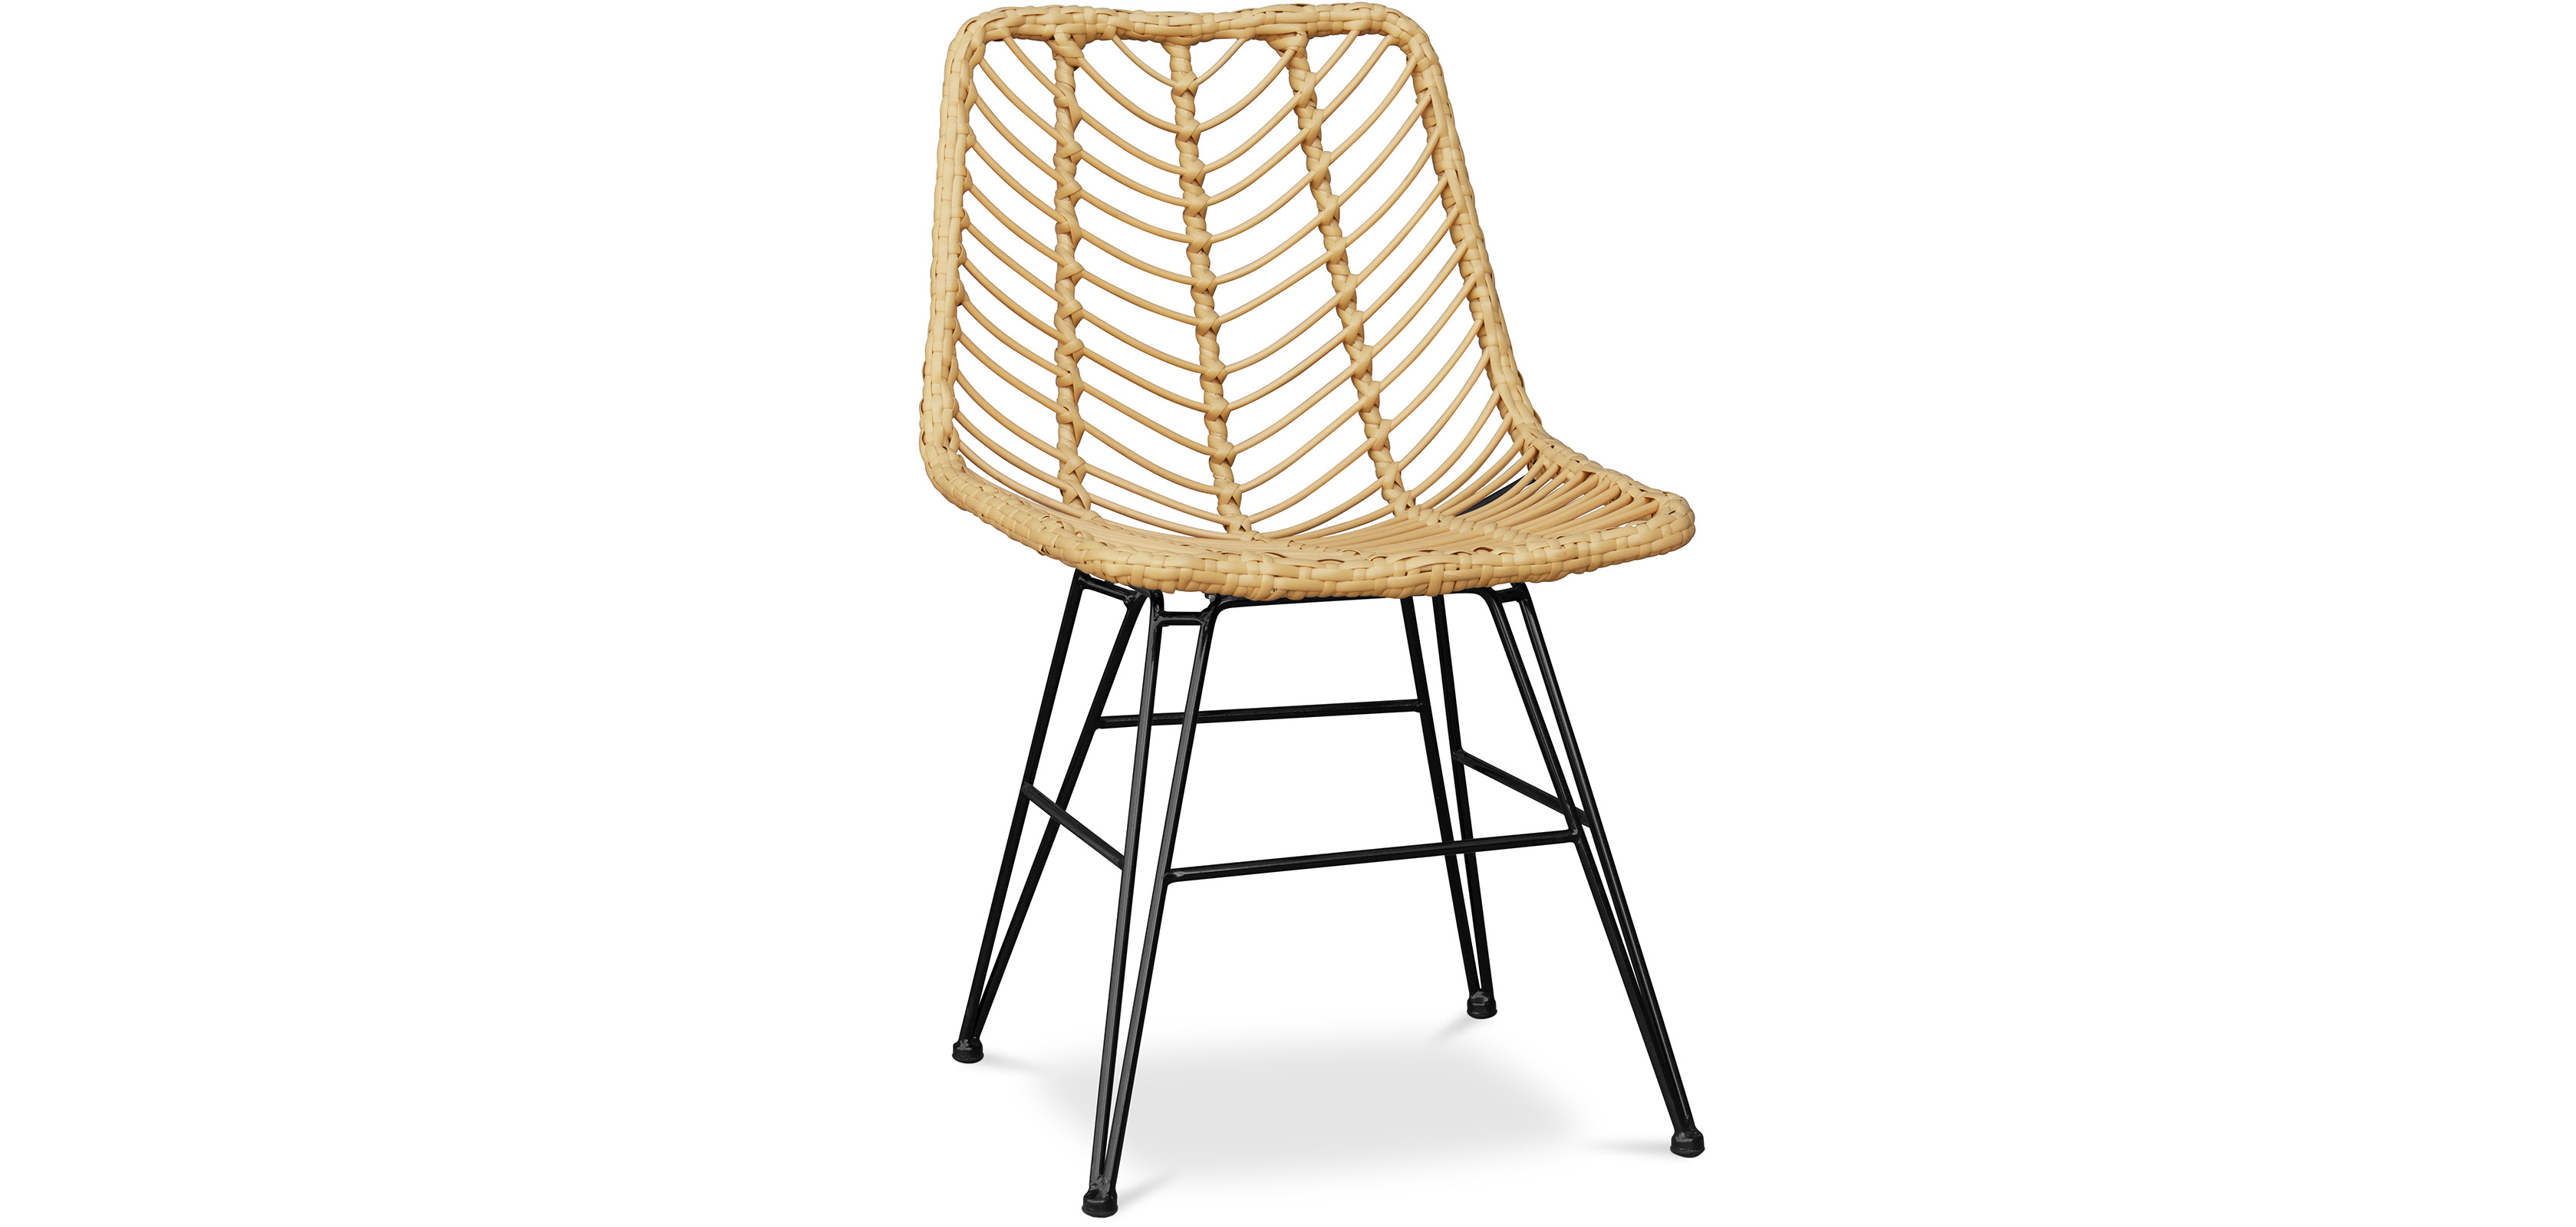 Buy Synthetic wicker dining chair  Natural wood 59254 - in the EU